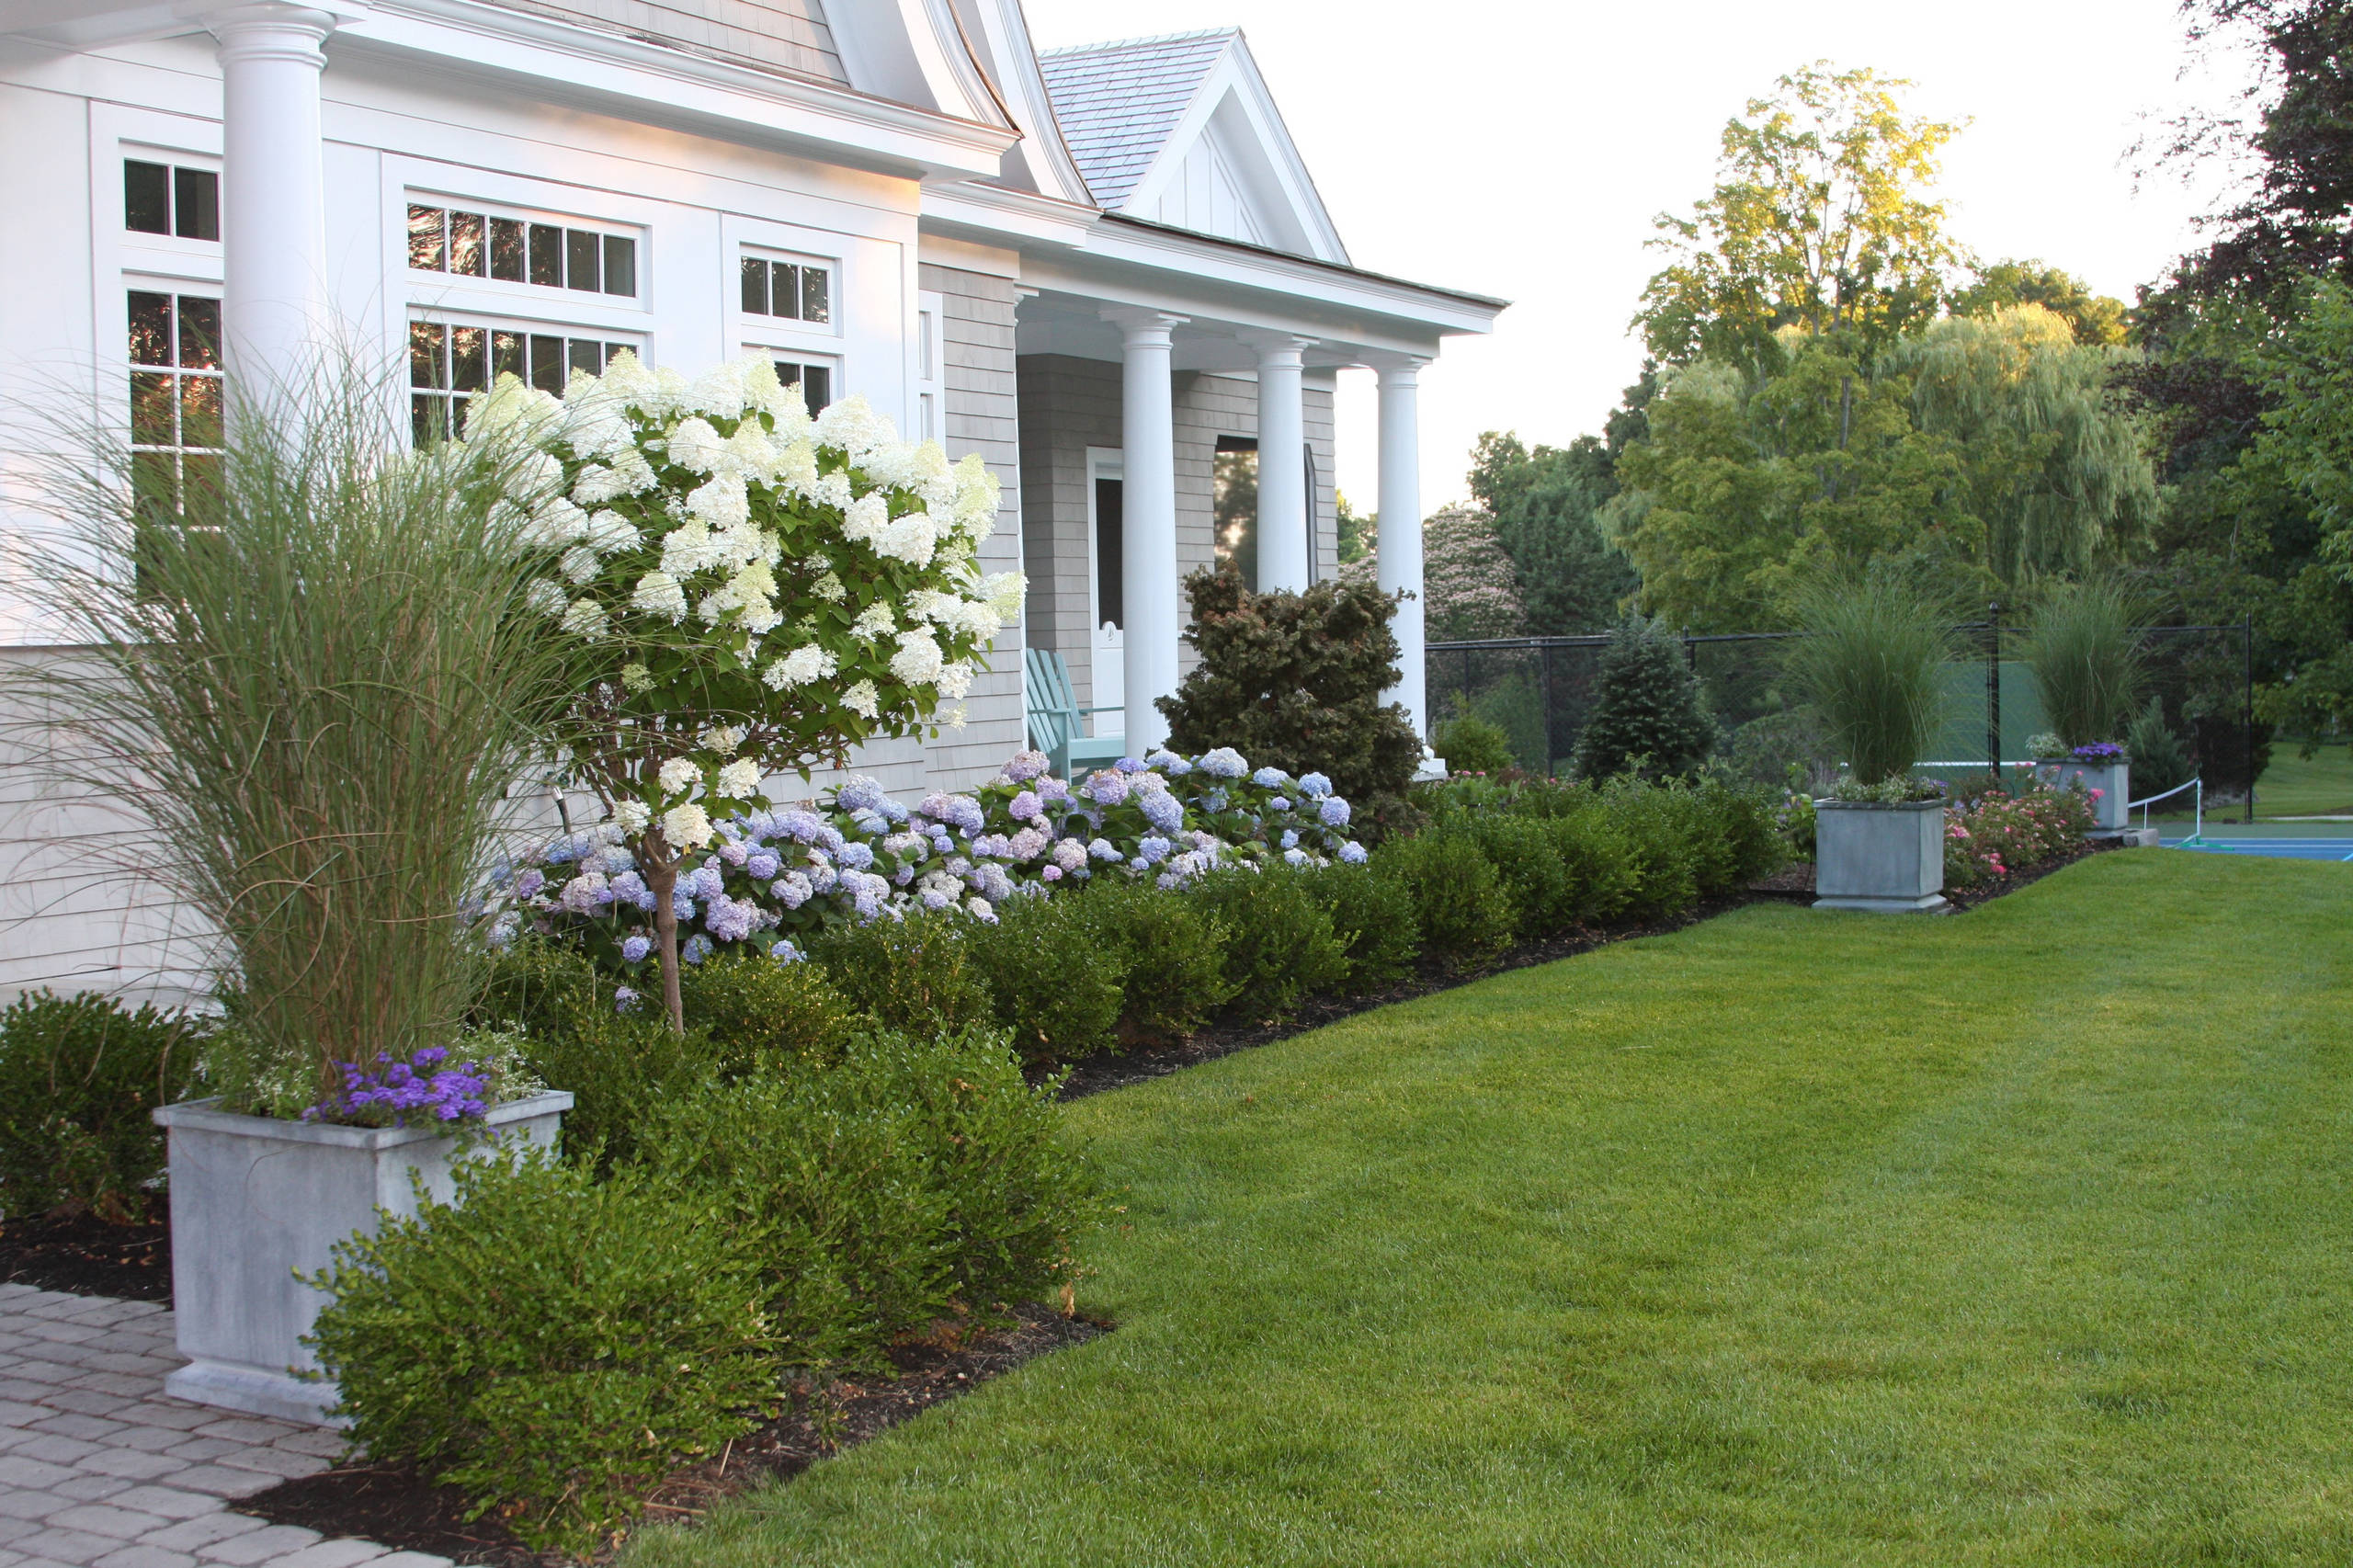 24 Beautiful Front Yard Landscaping Pictures & Ideas  Houzz